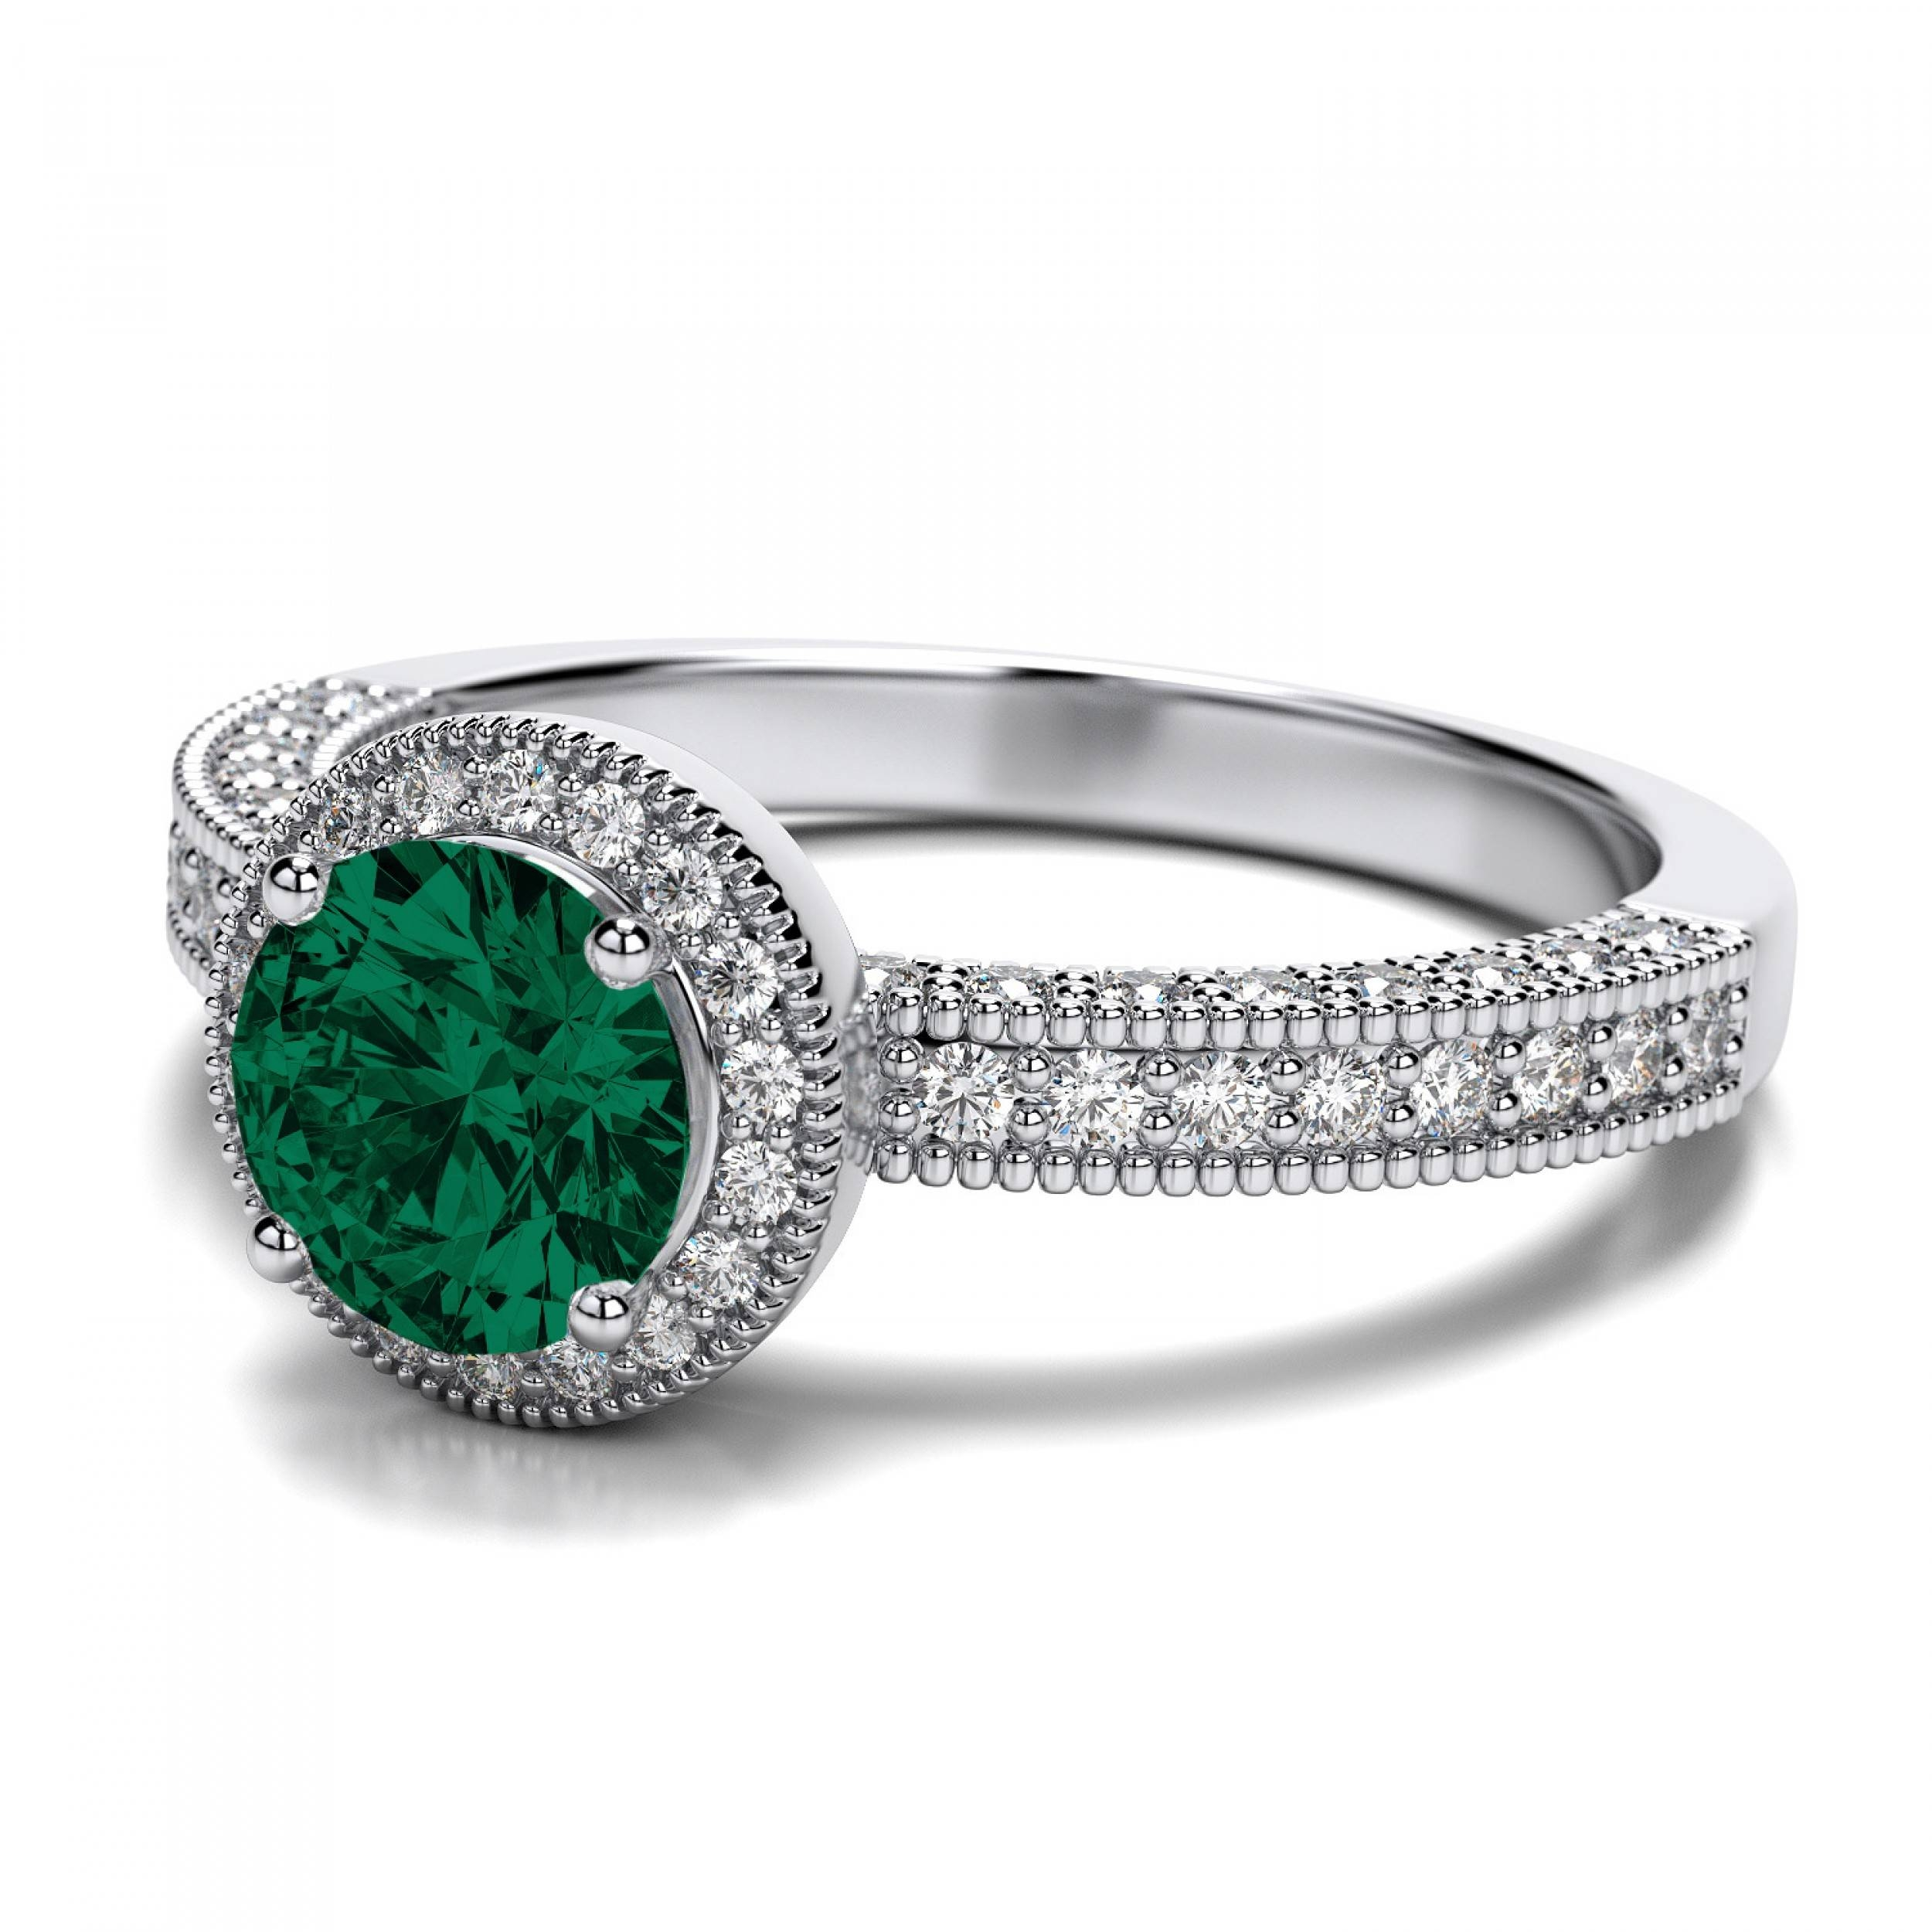 Victorian Vintage Round Emerald Engagement Ring In 14k White Gold Intended For Emerald Engagement Rings White Gold (View 7 of 15)